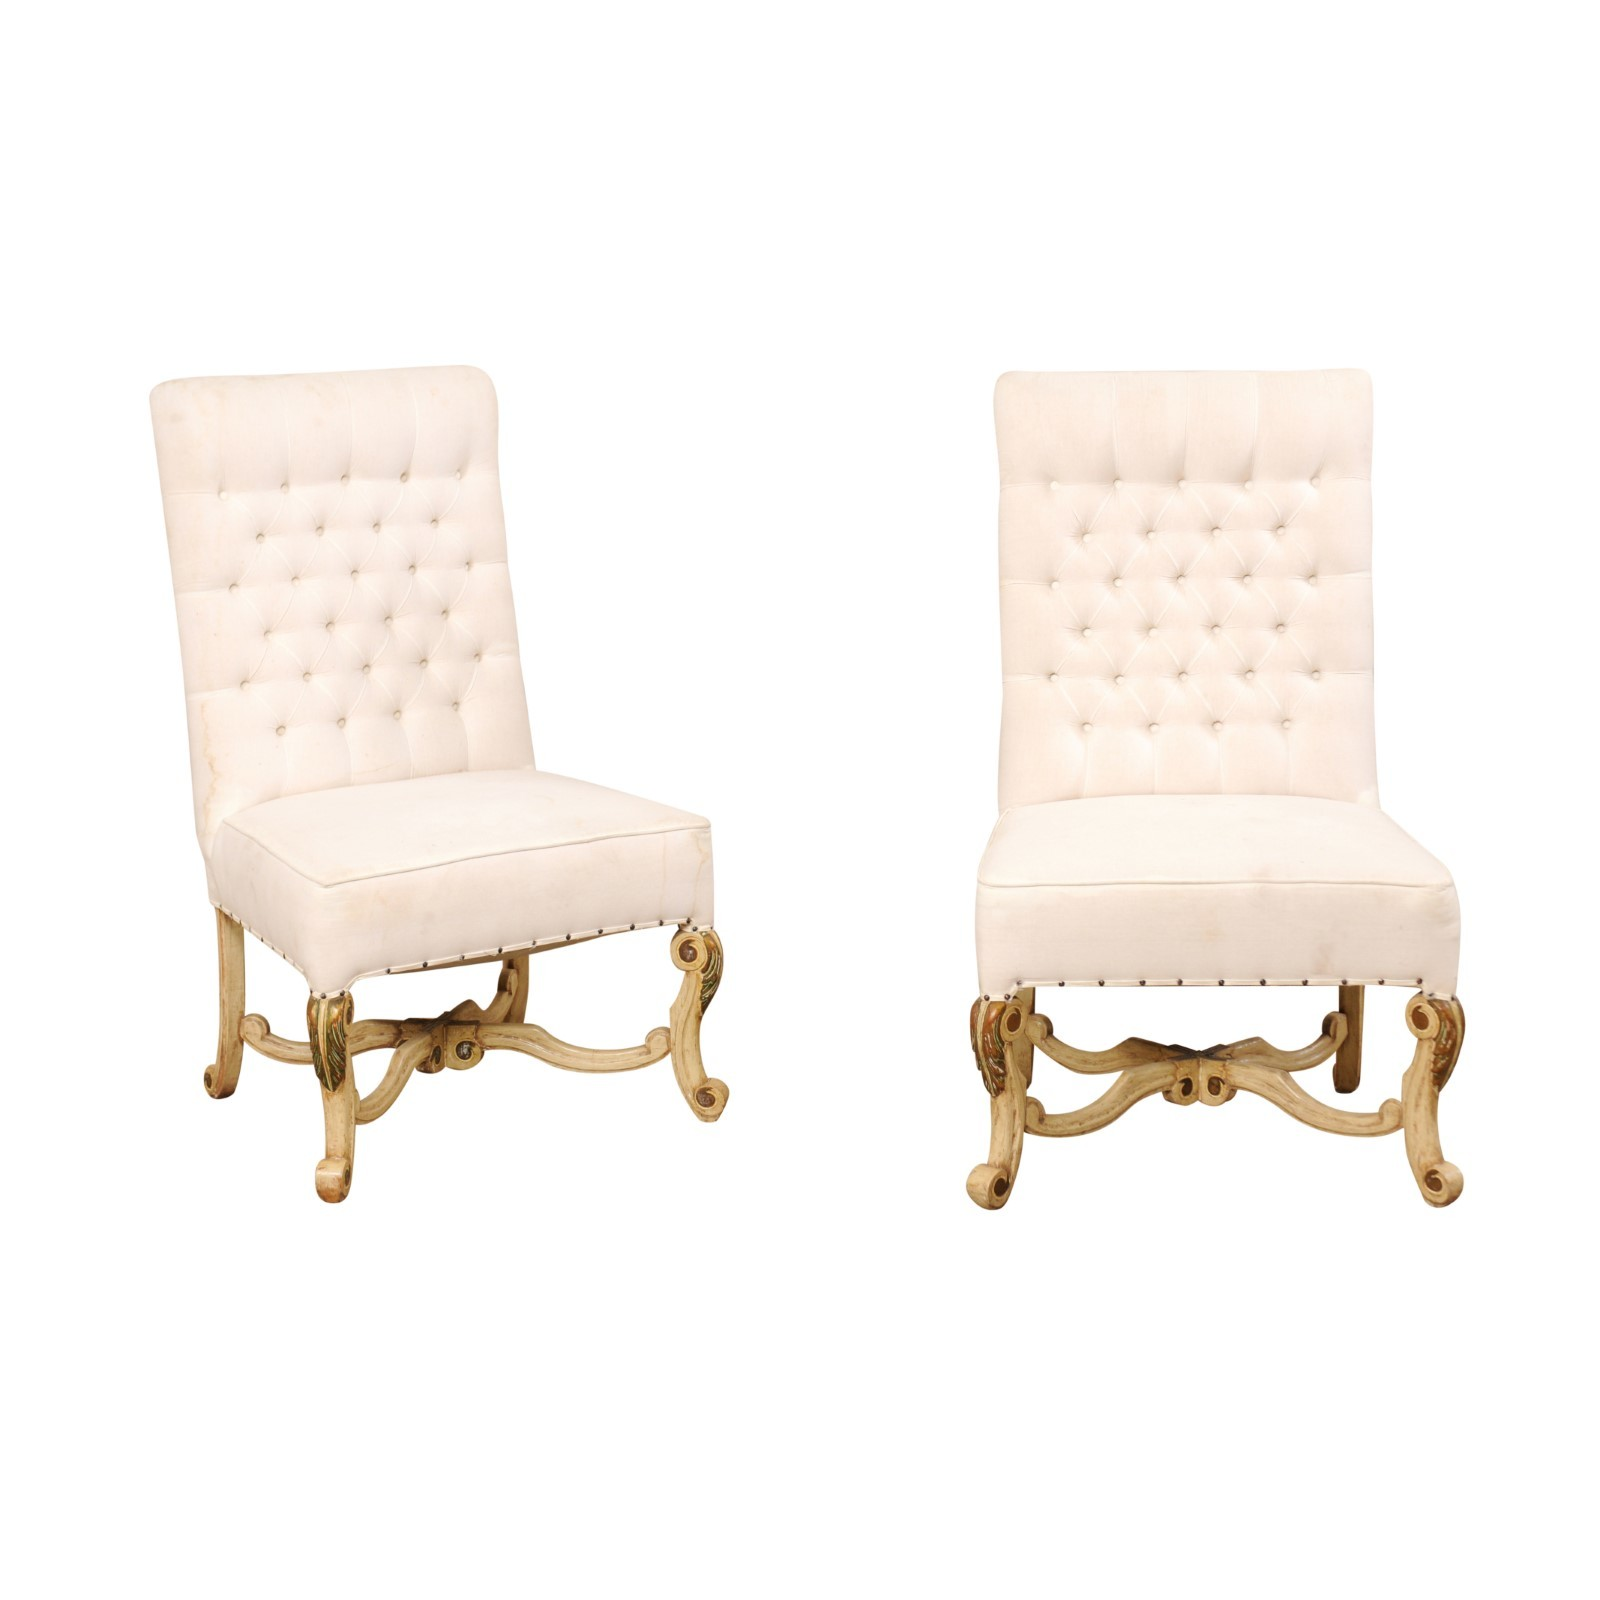 Pair High-back Chairs w/Nicely Carved Legs